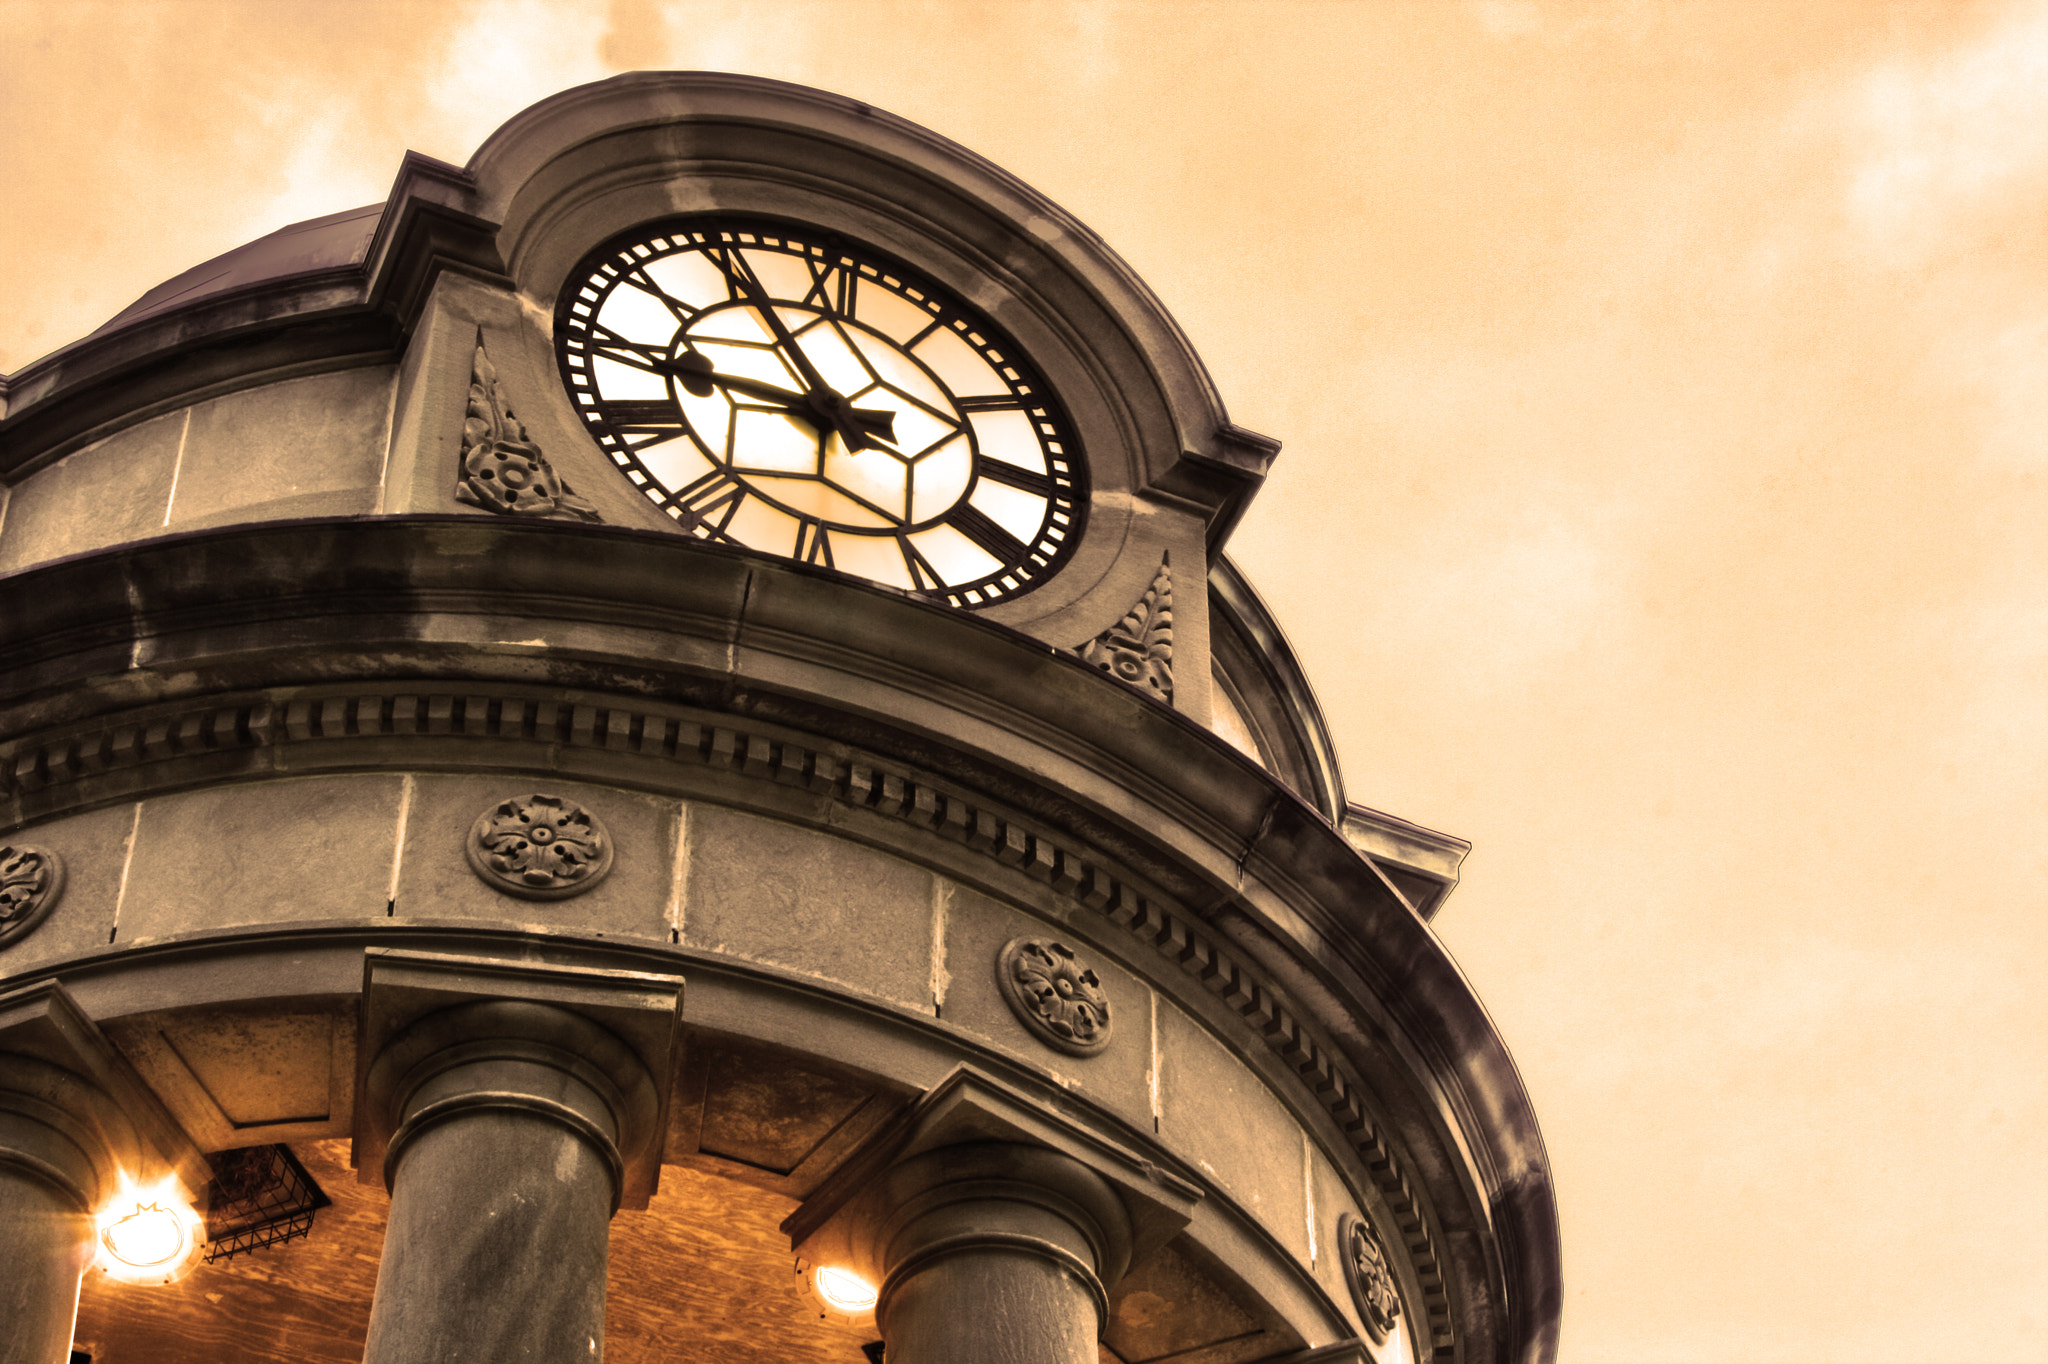 Photograph Victoria Park Clock Tower by Temara Brown on 500px